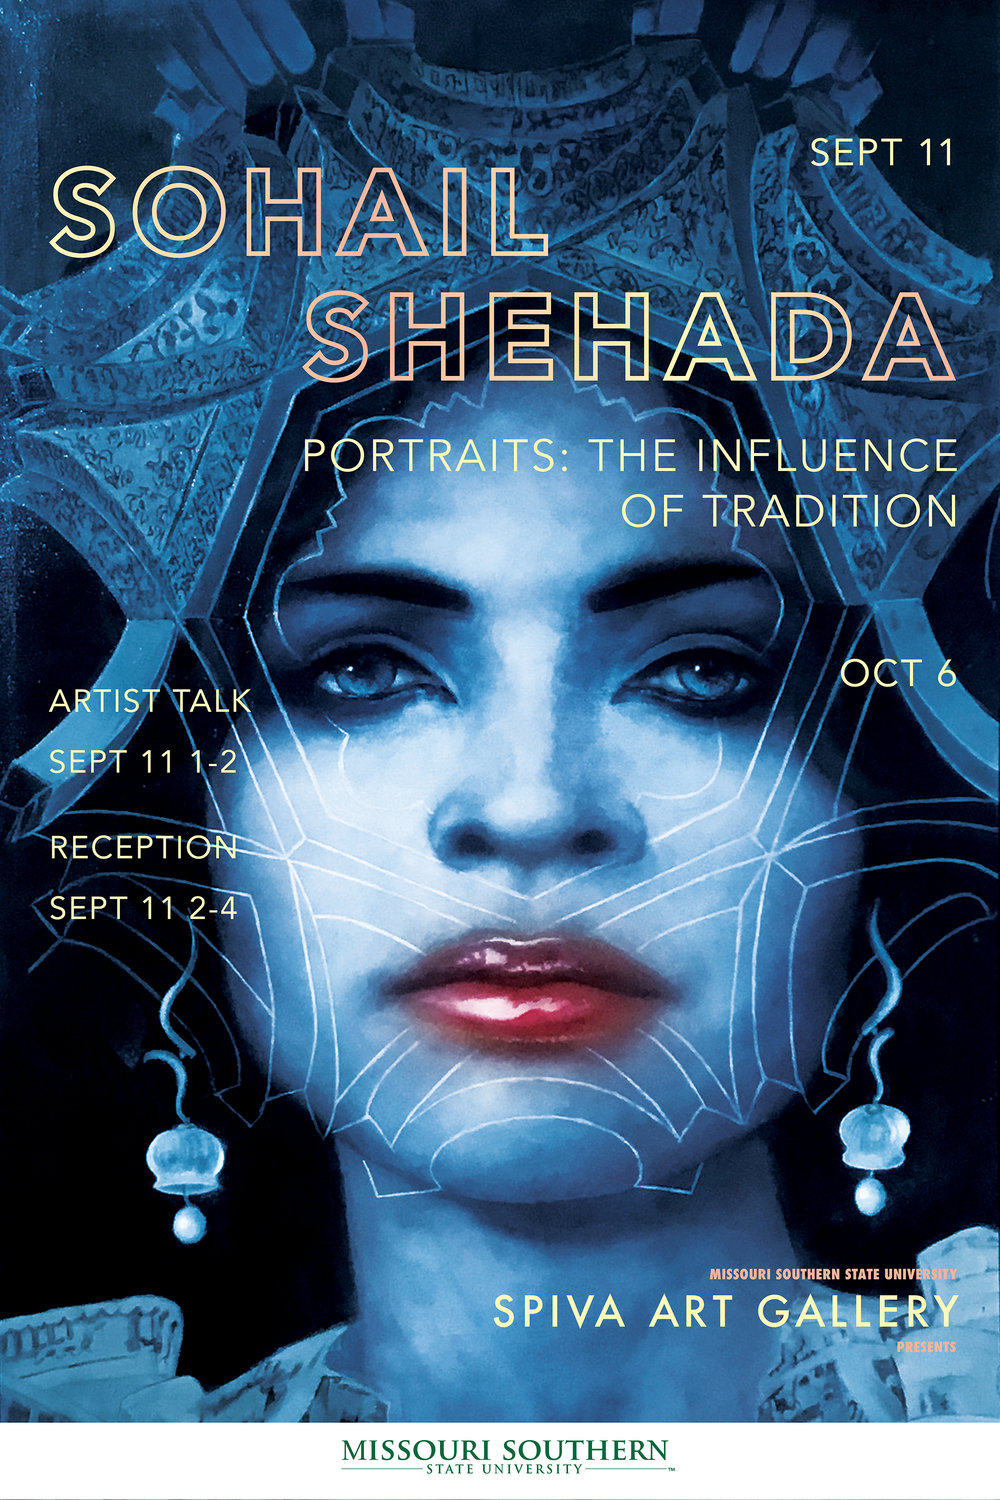 Sohail Shehada, Portraits: The Influence of Tradition